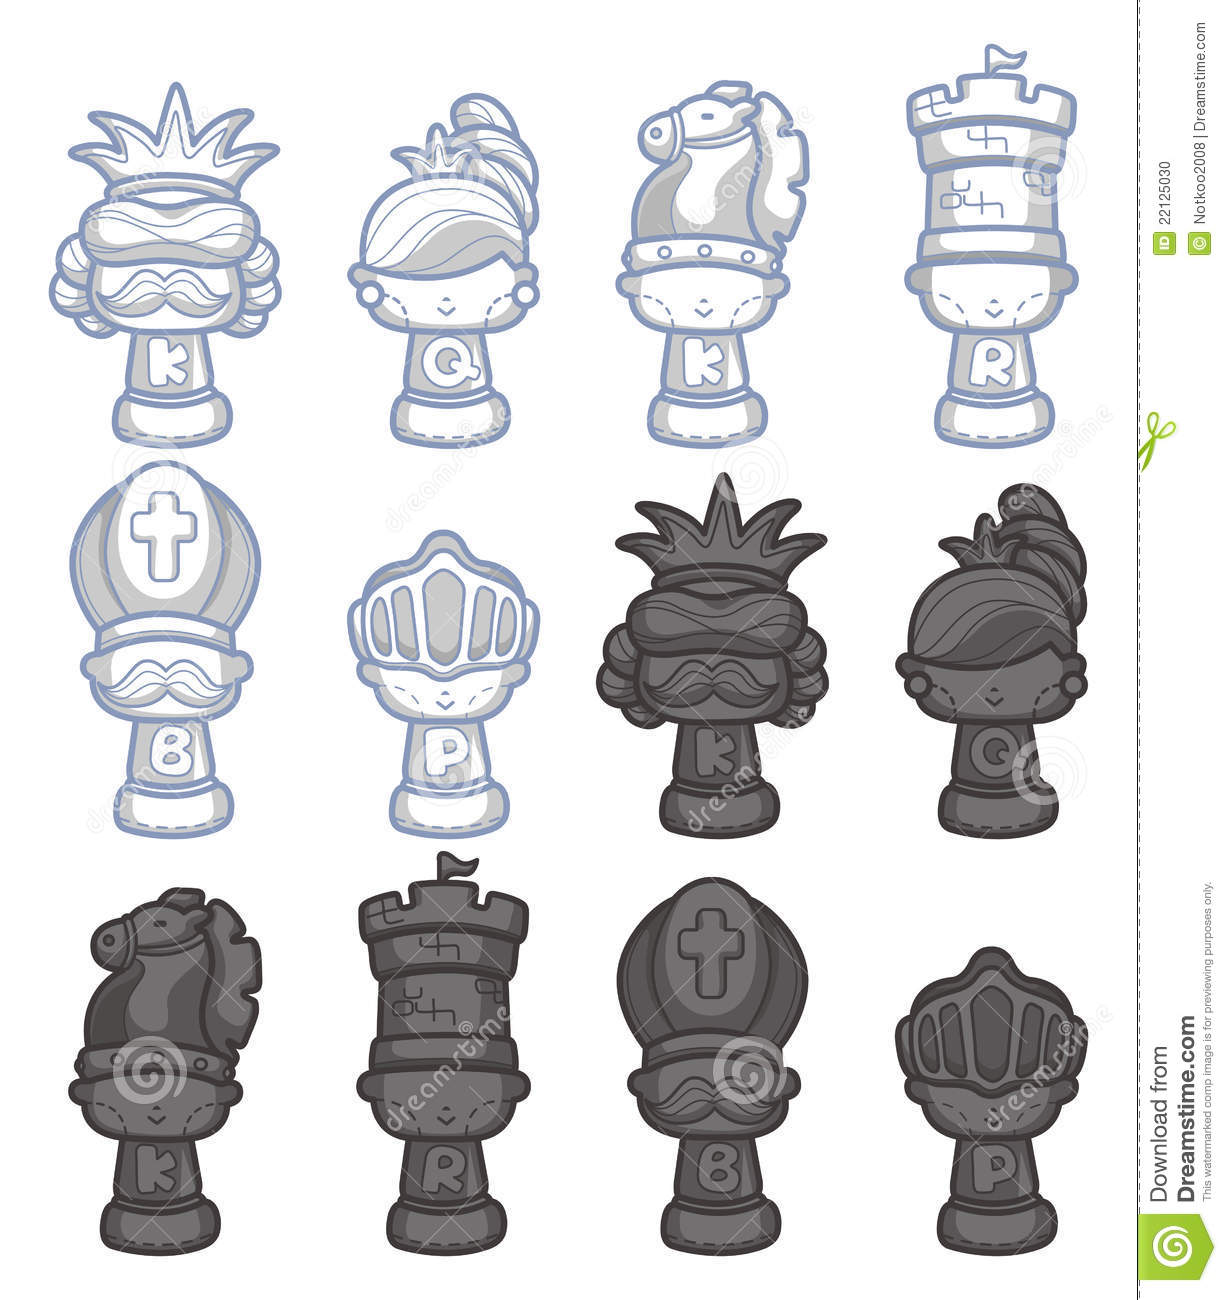 how to win chess with only a queen